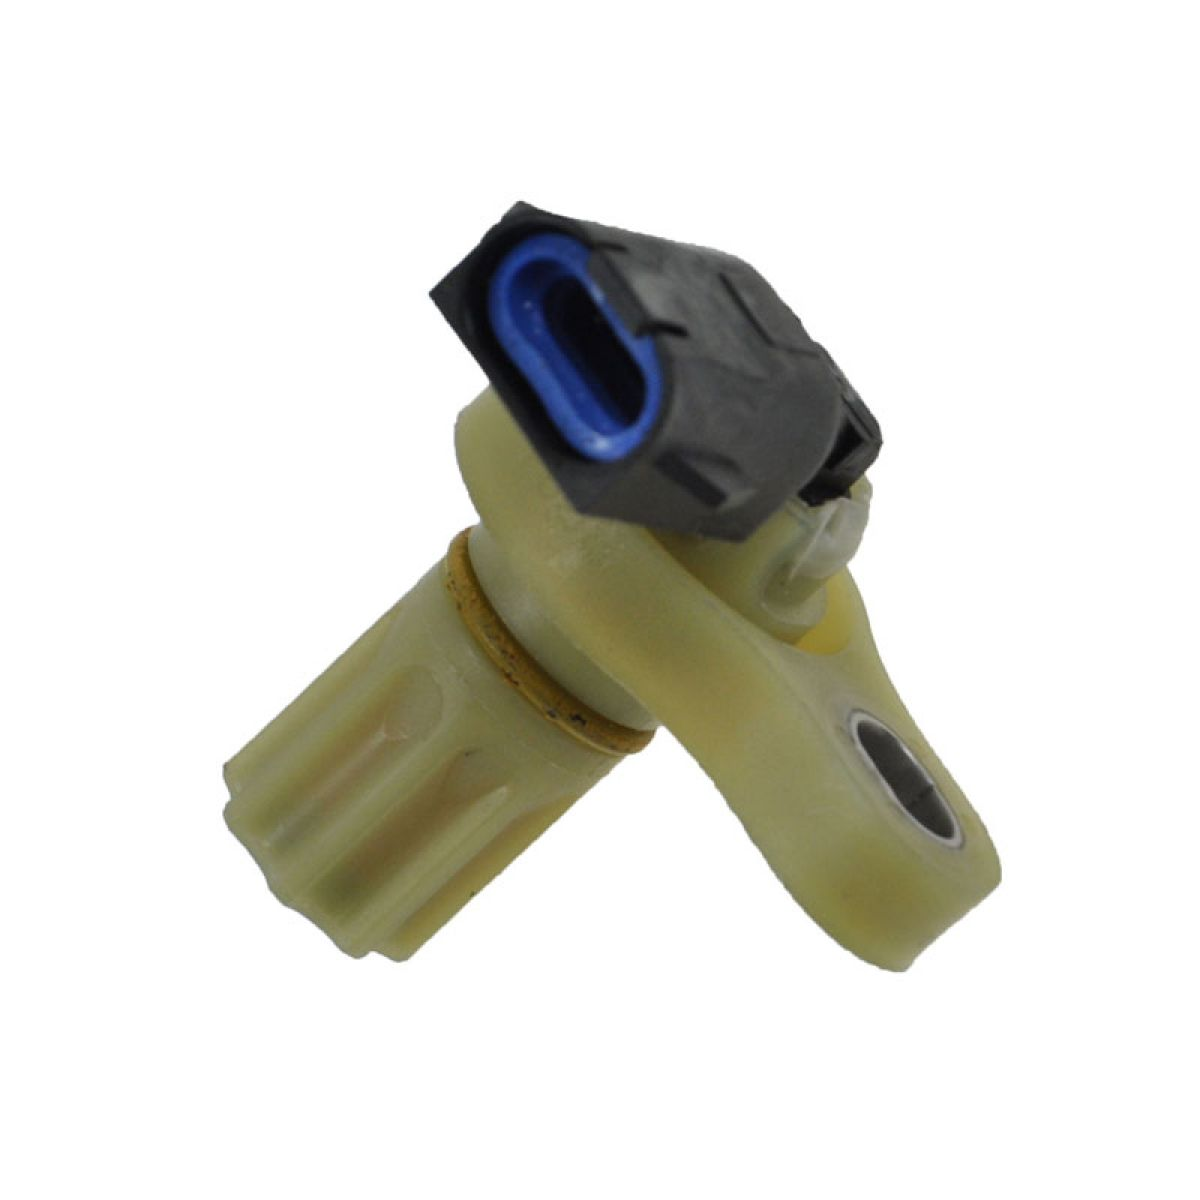 Output Vehicle Transmission Speed Sensor VSS for Ford Escape Mercury Mariner